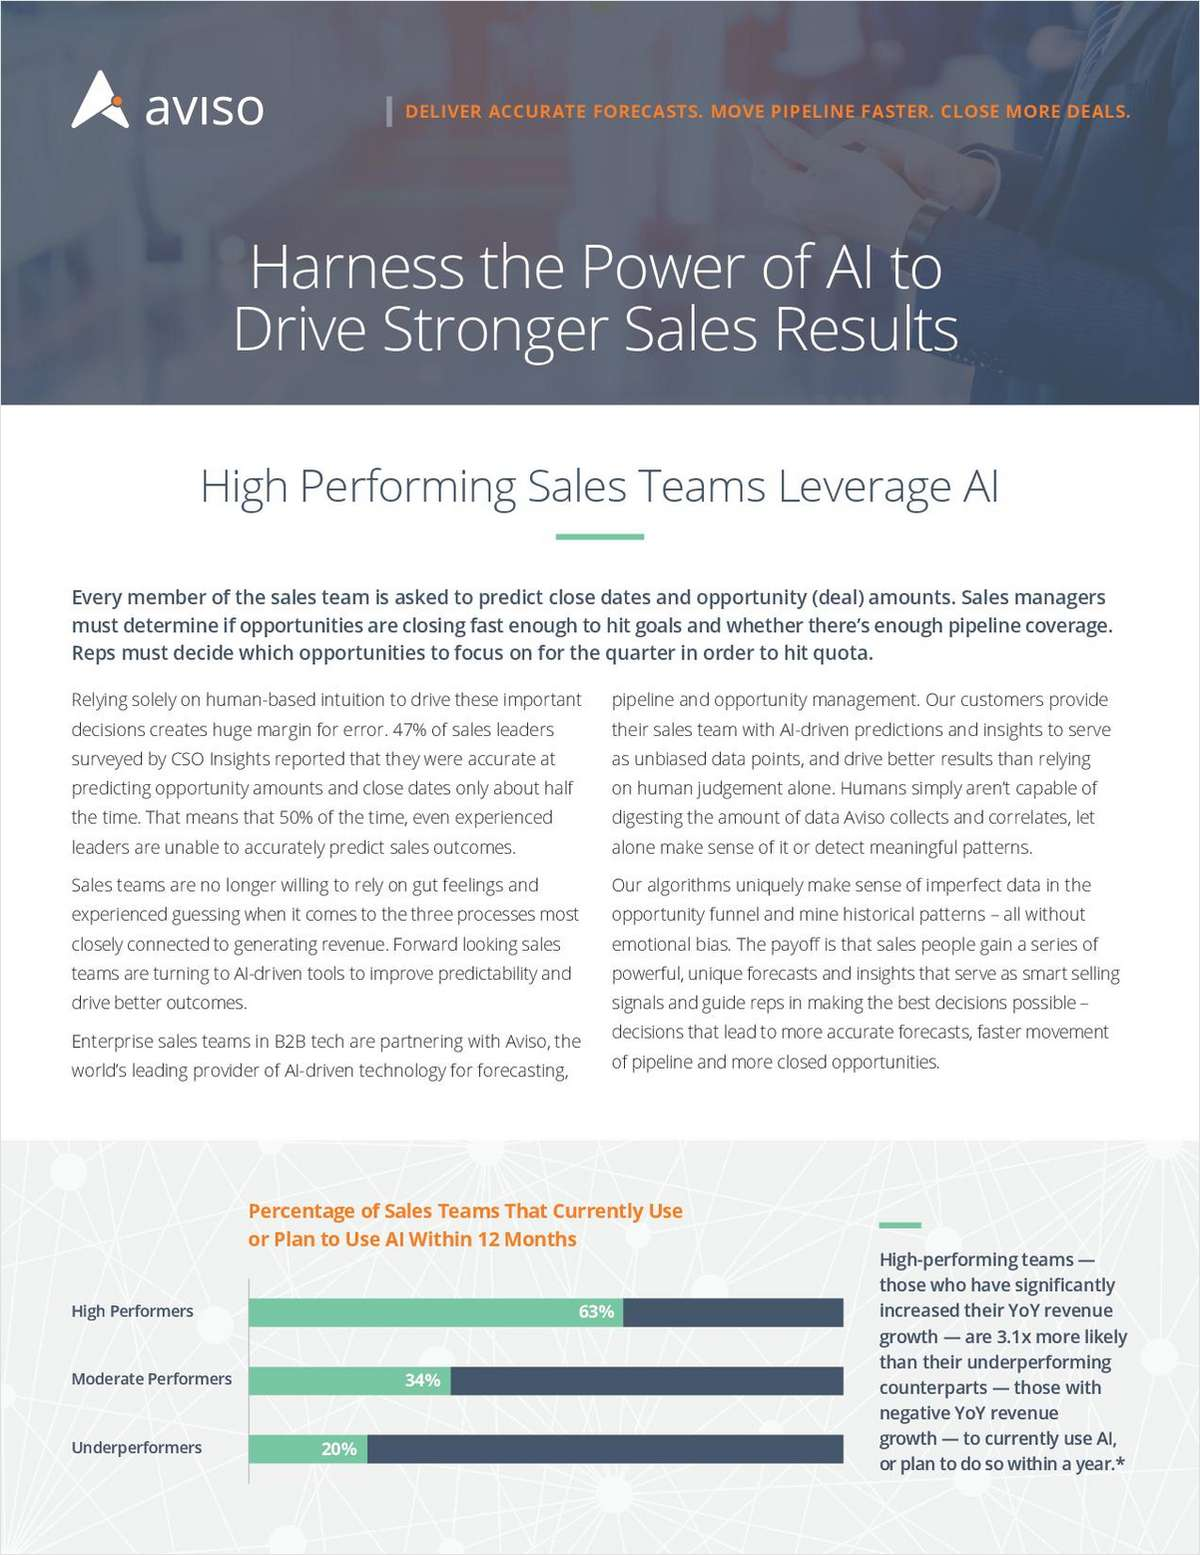 Harness the Power of AI to Drive Stronger Sales Results